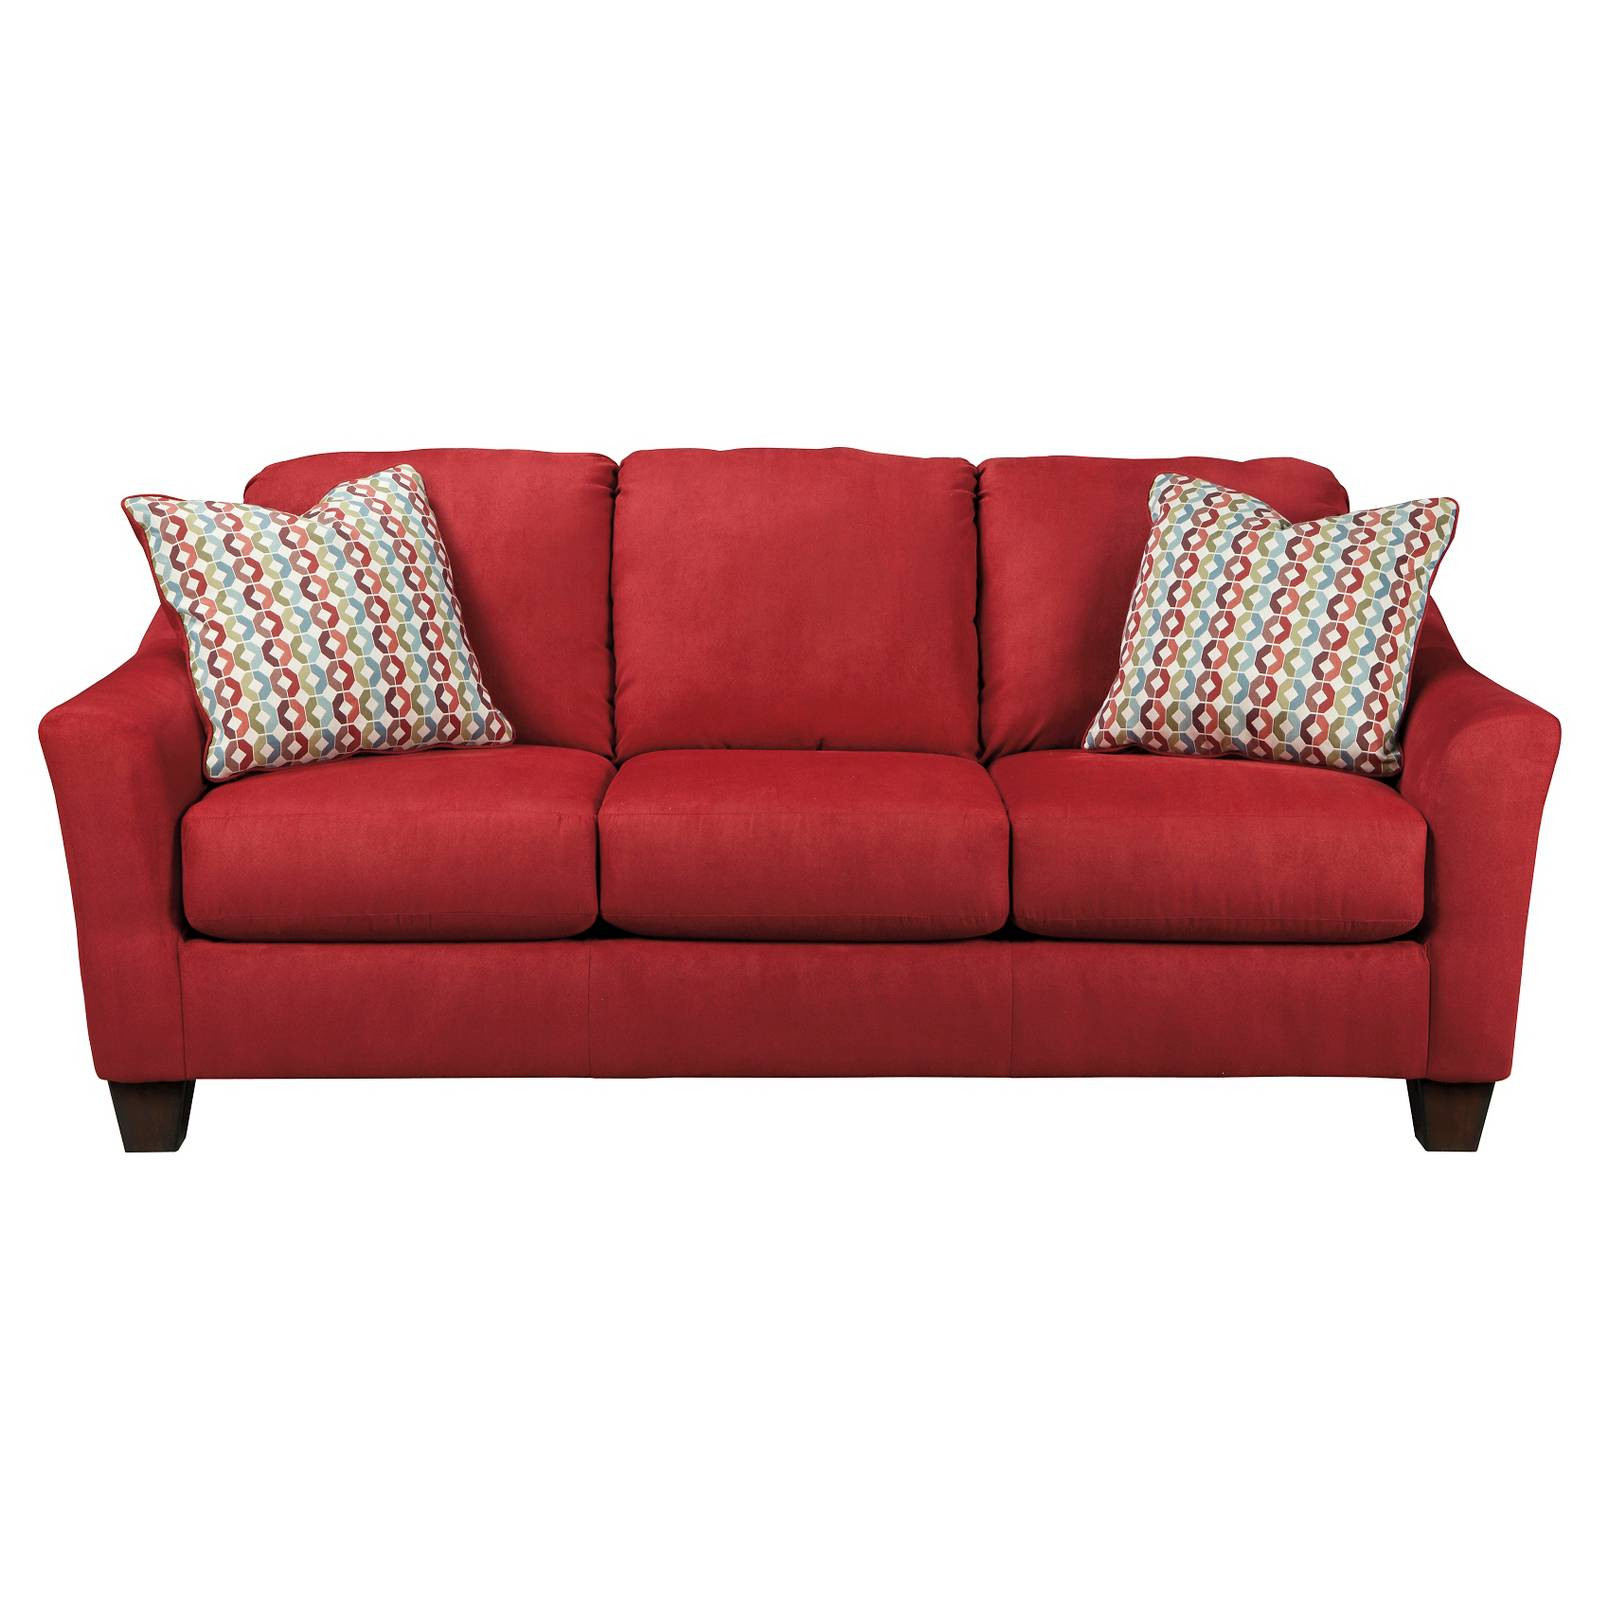 Best ideas about Sectional Sleeper Sofa Queen . Save or Pin Hannin Queen Sofa Sleeper Ashley Furniture Now.